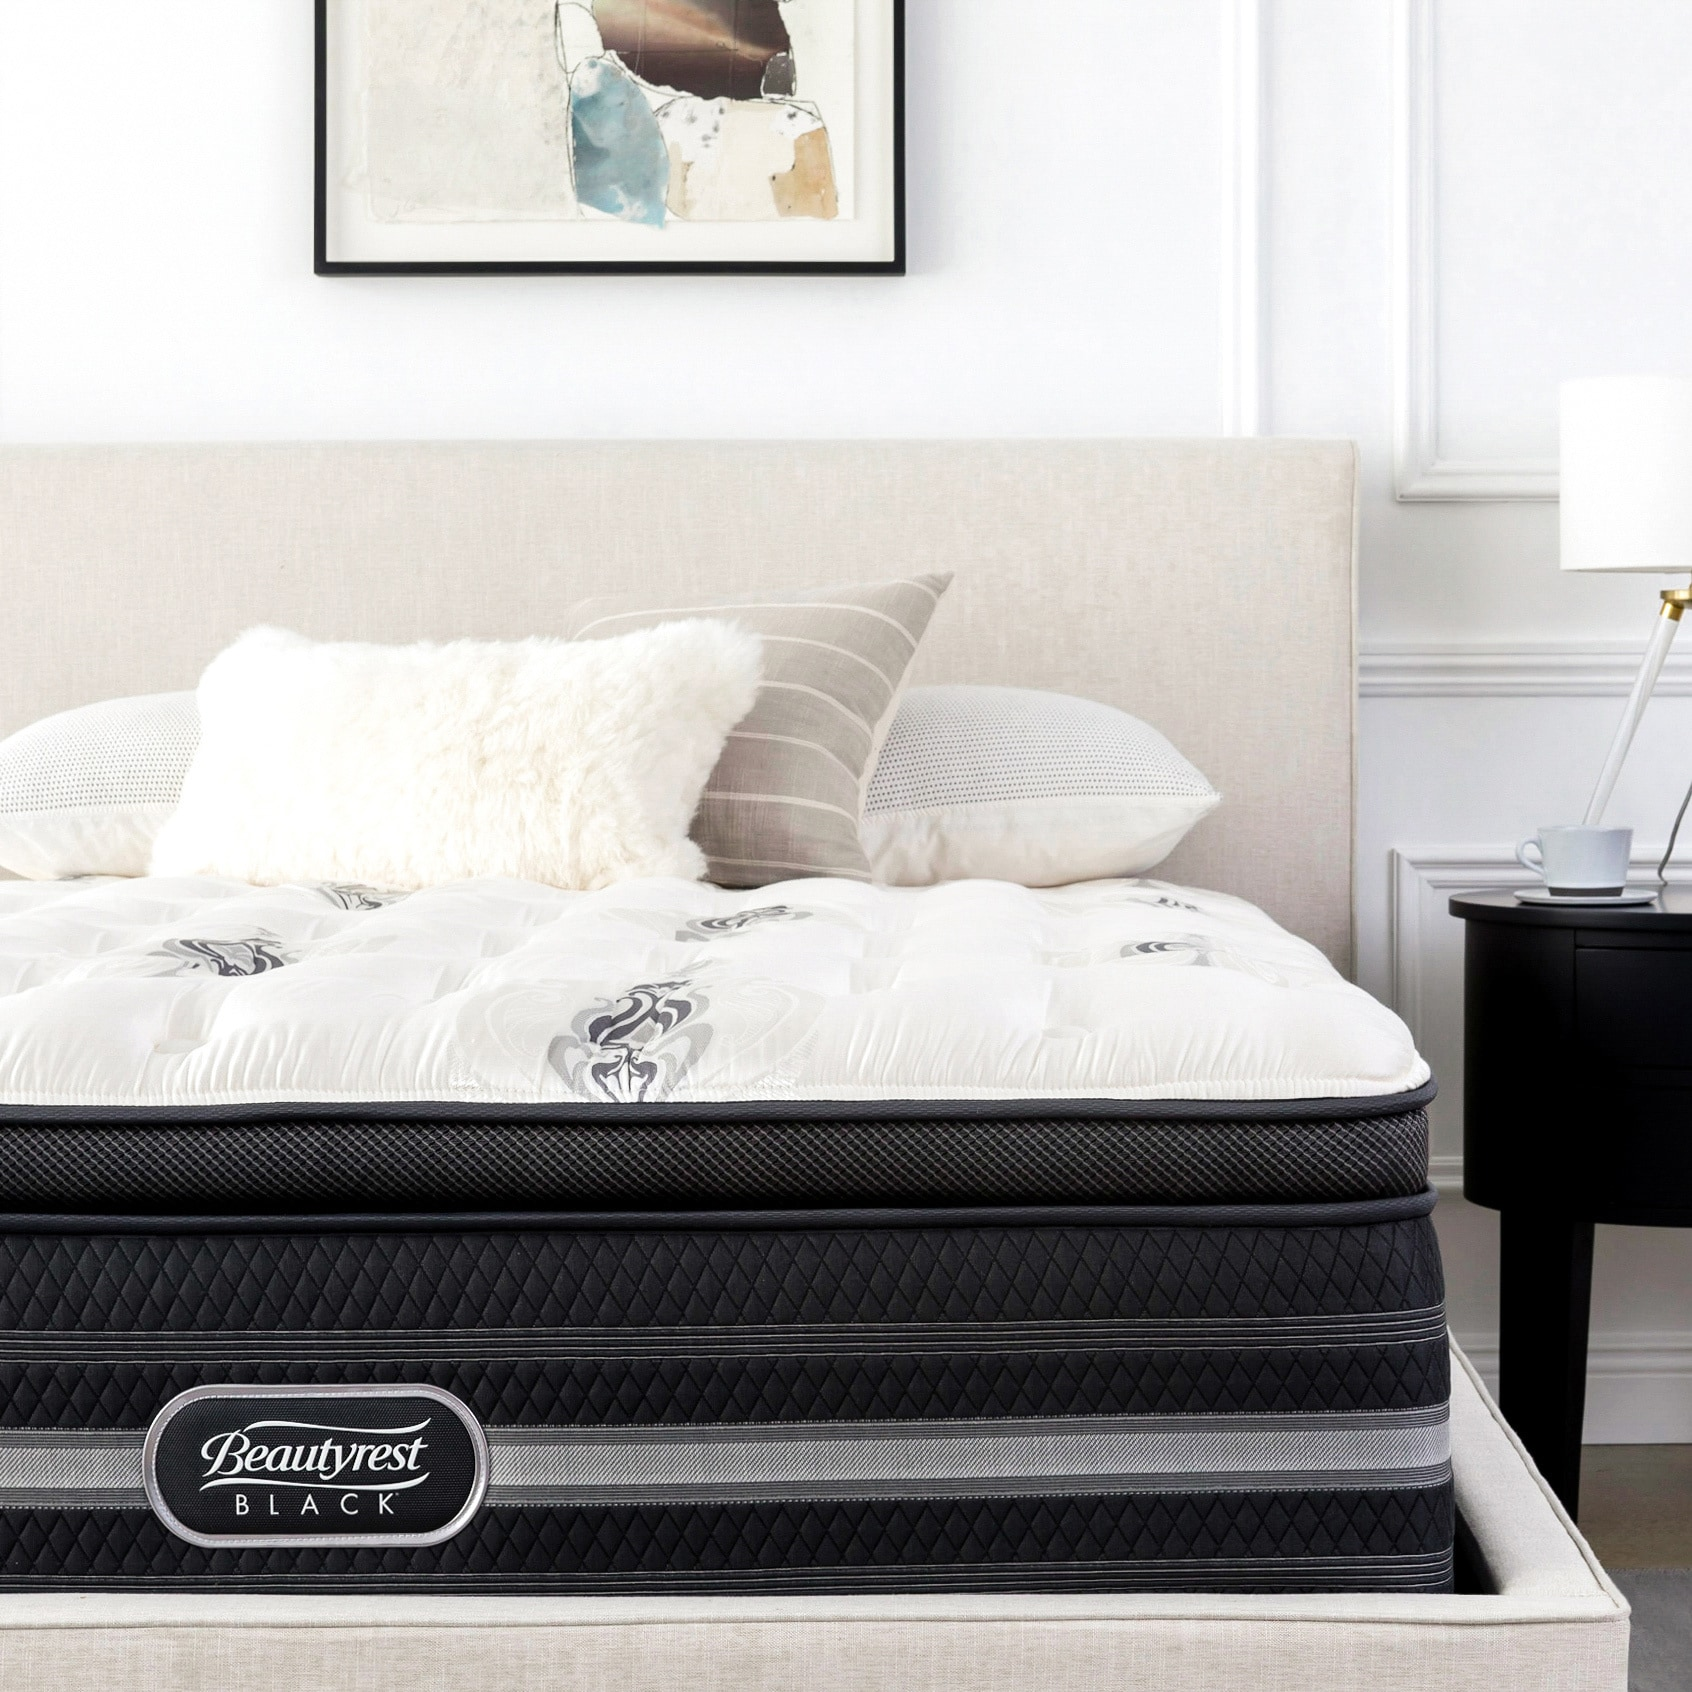 Beautyrest Black King Size Beautyrest Black Sonya 18 Inch Medium Firm Pillow Top King Size Mattress Set N A